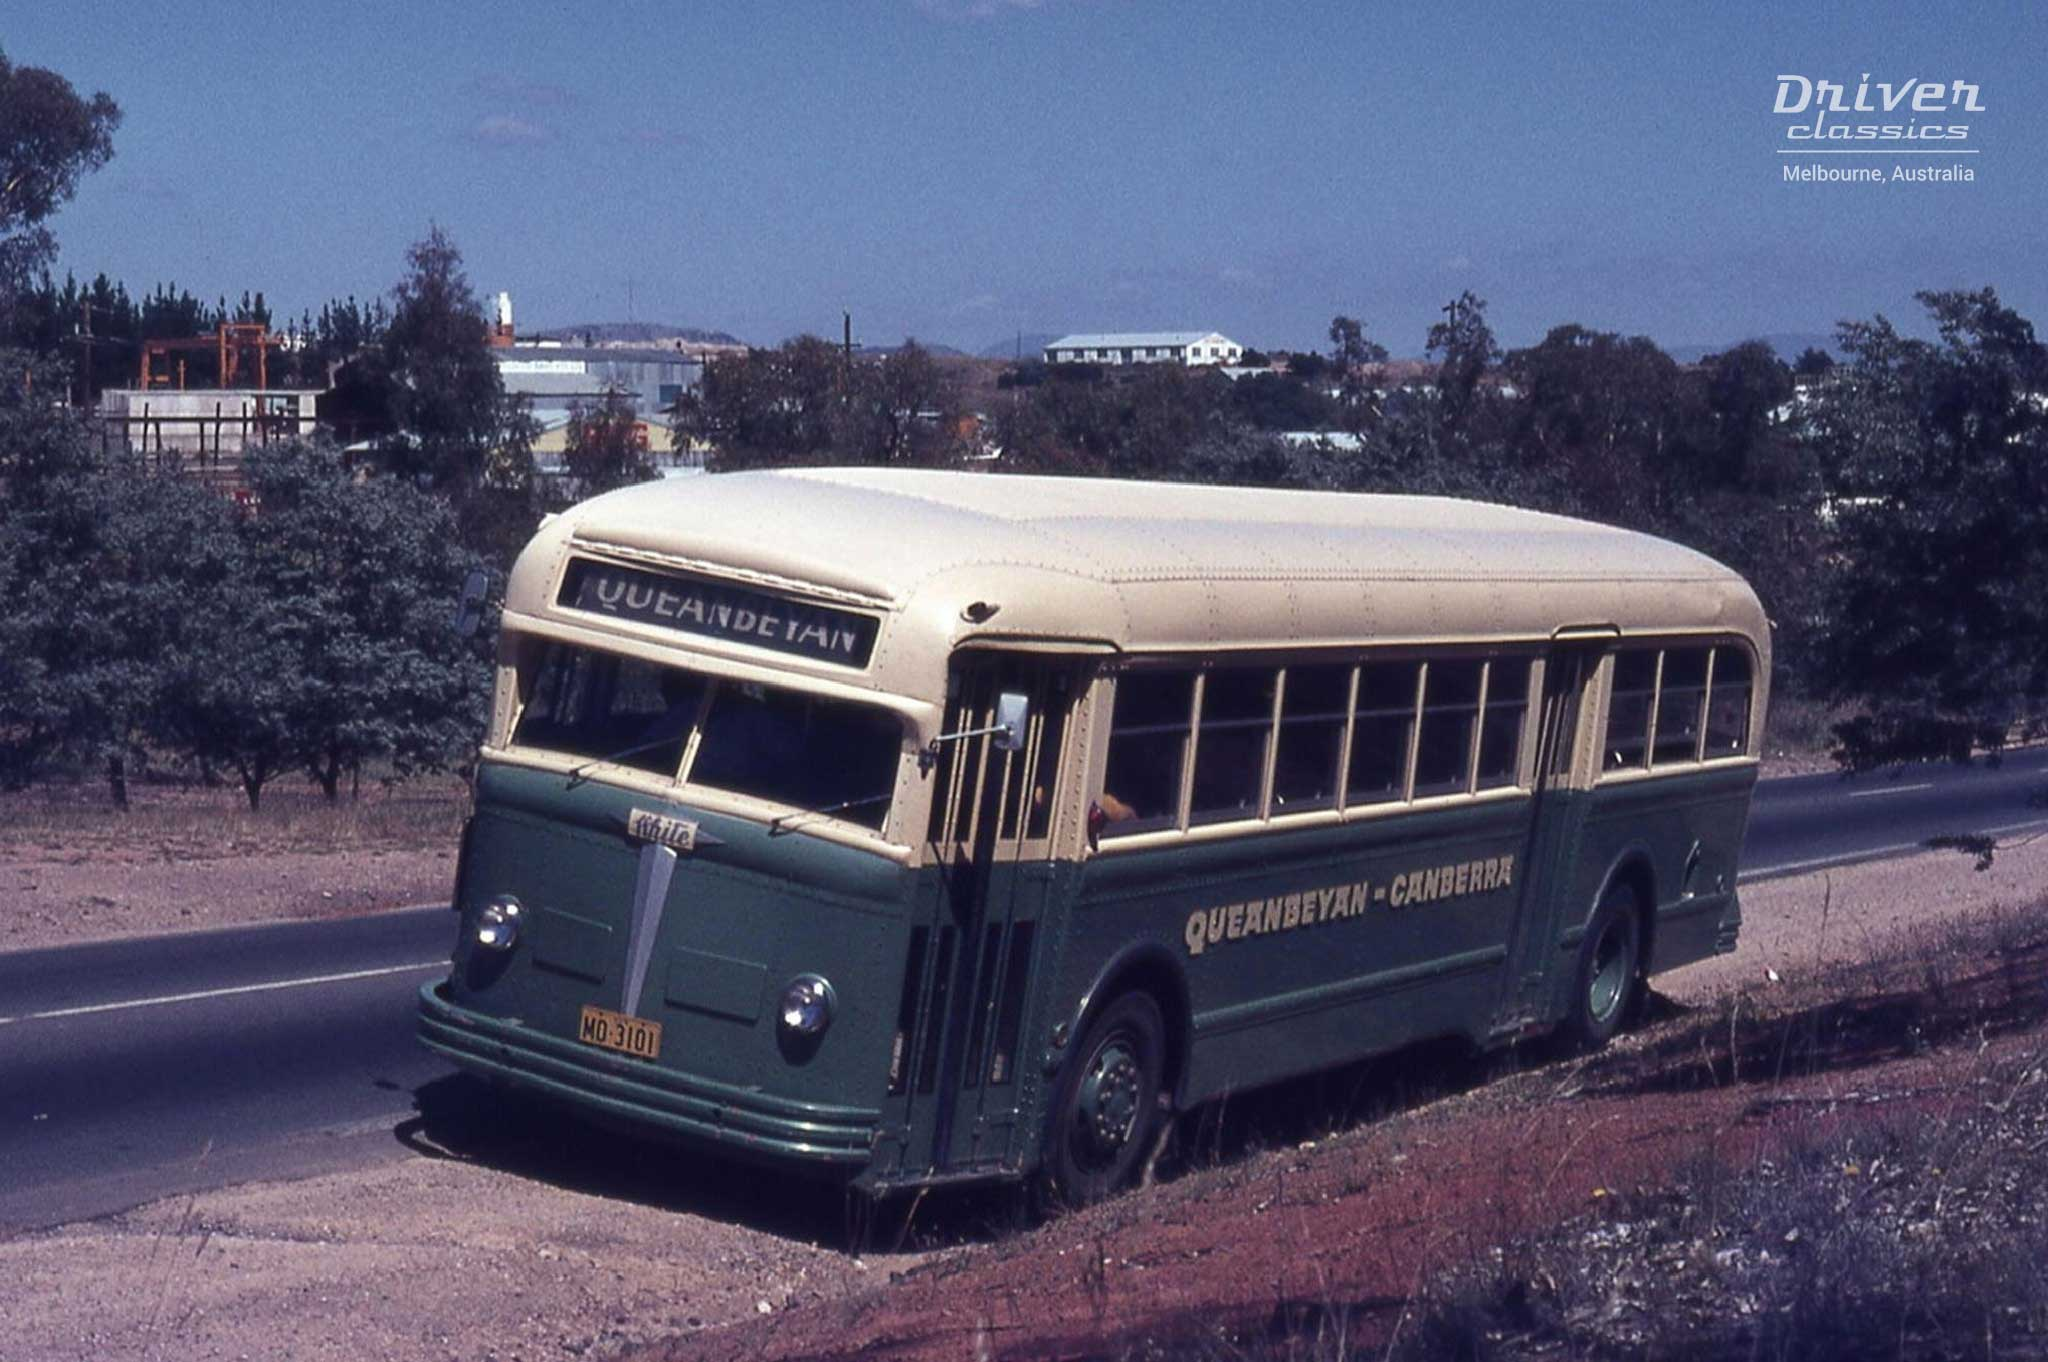 White 798-12 bus, 1948 model, in original 1950s paint colours